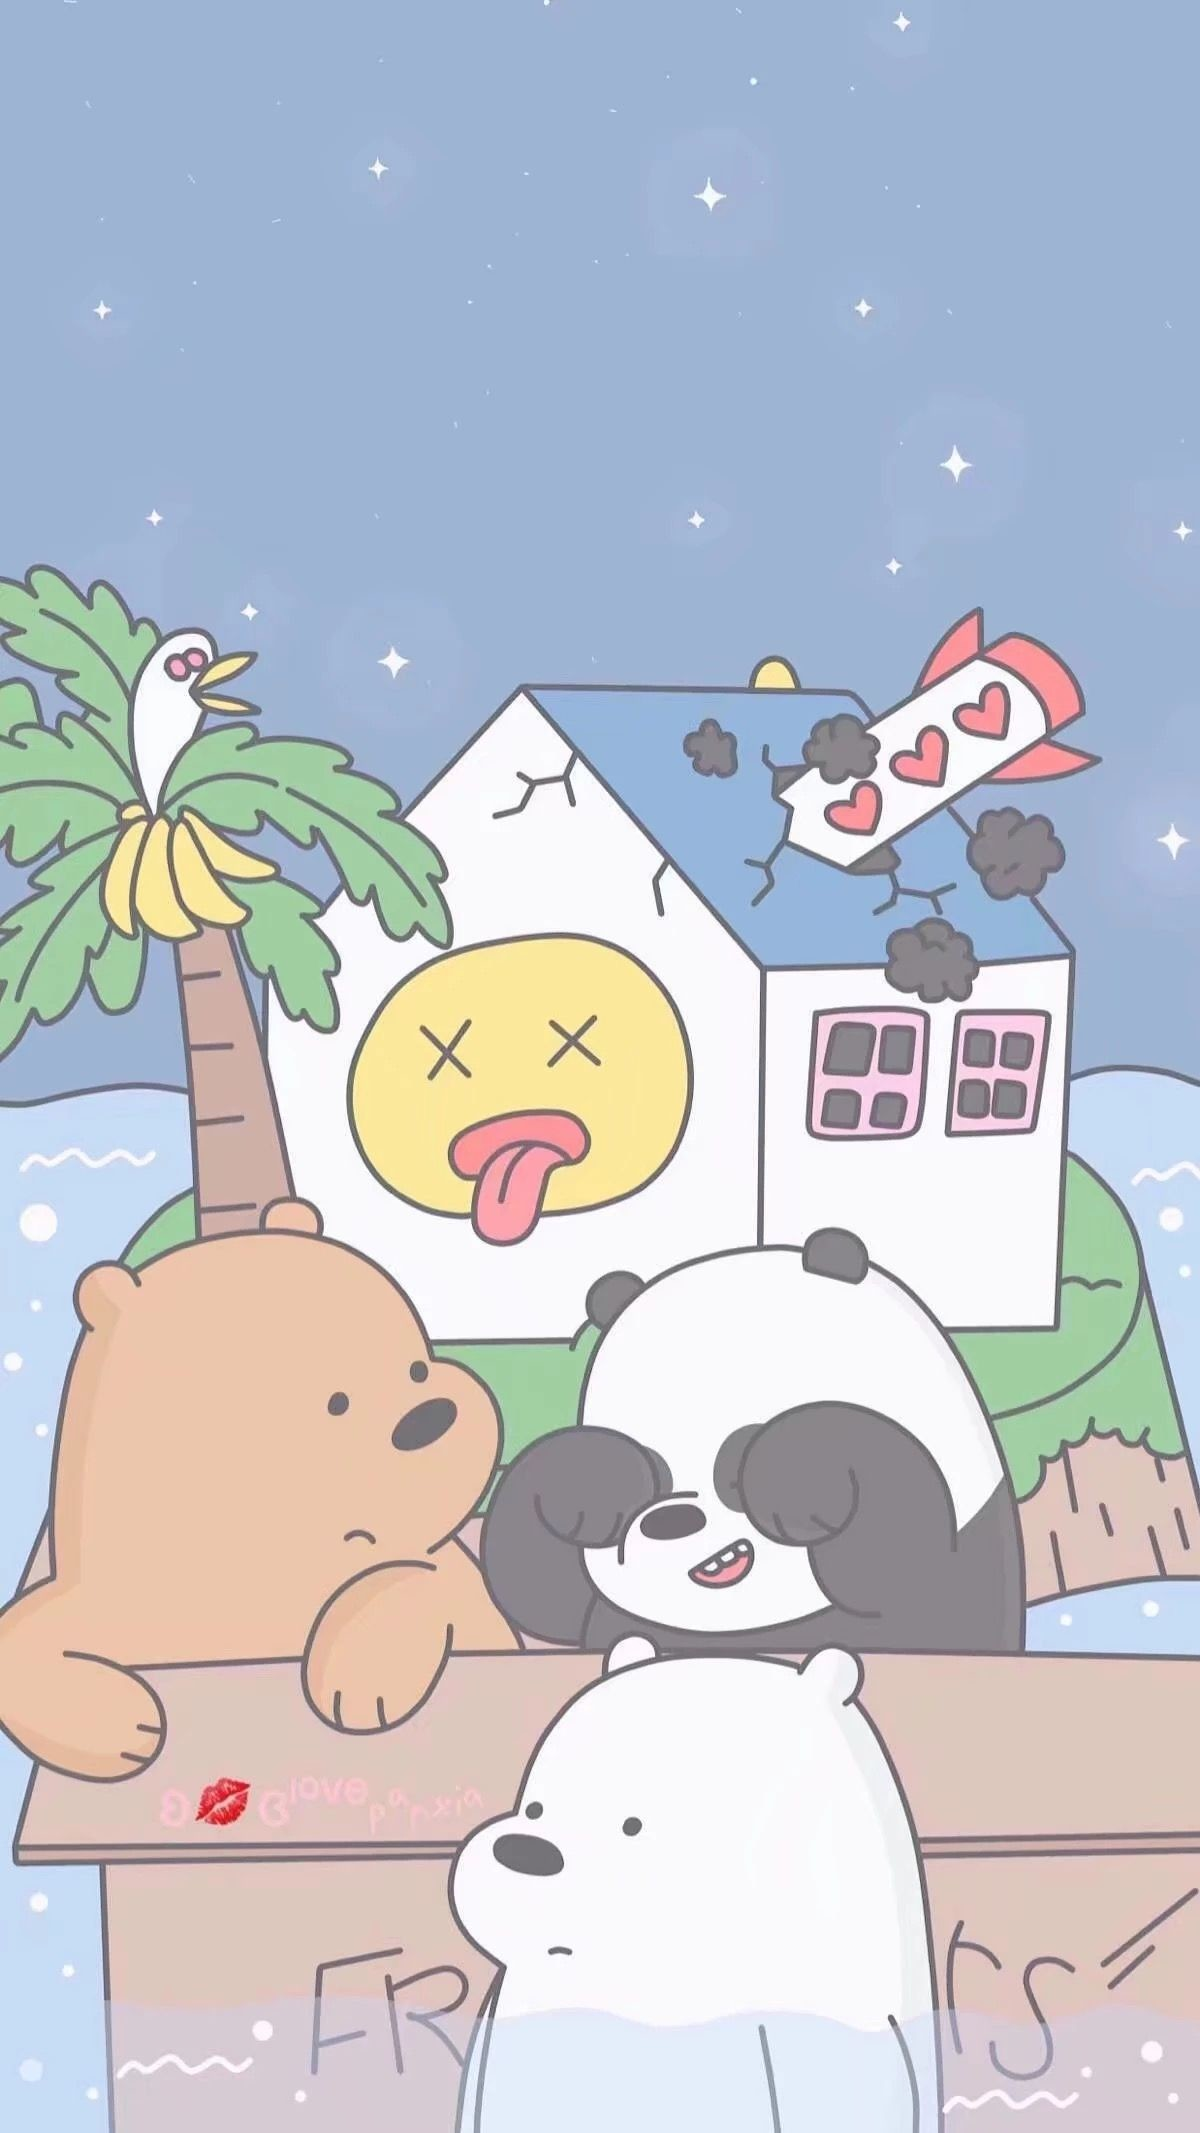 We bare bears wallpapers 85 background pictures - We bare bears background ...